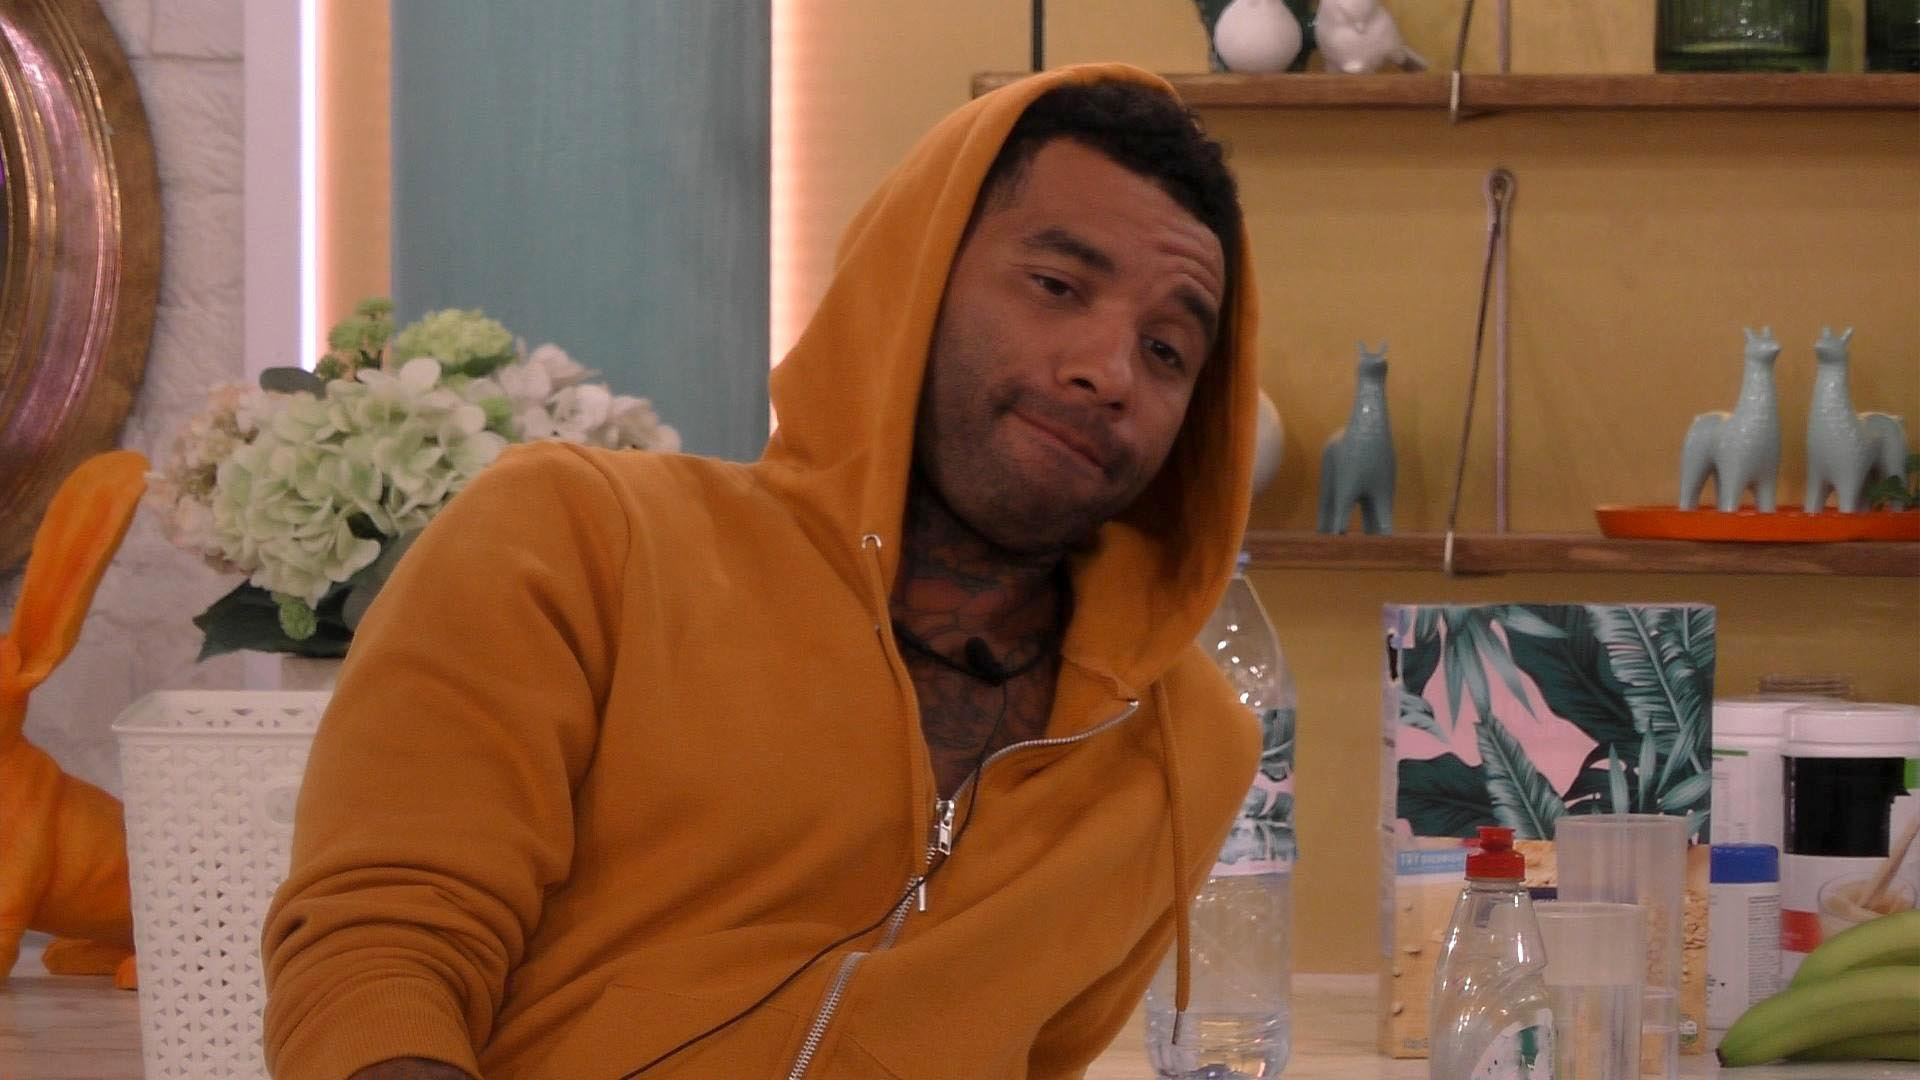 Celebrity Big Brother's Jermaine Pennant put up for eviction for 'disrespecting his wife'